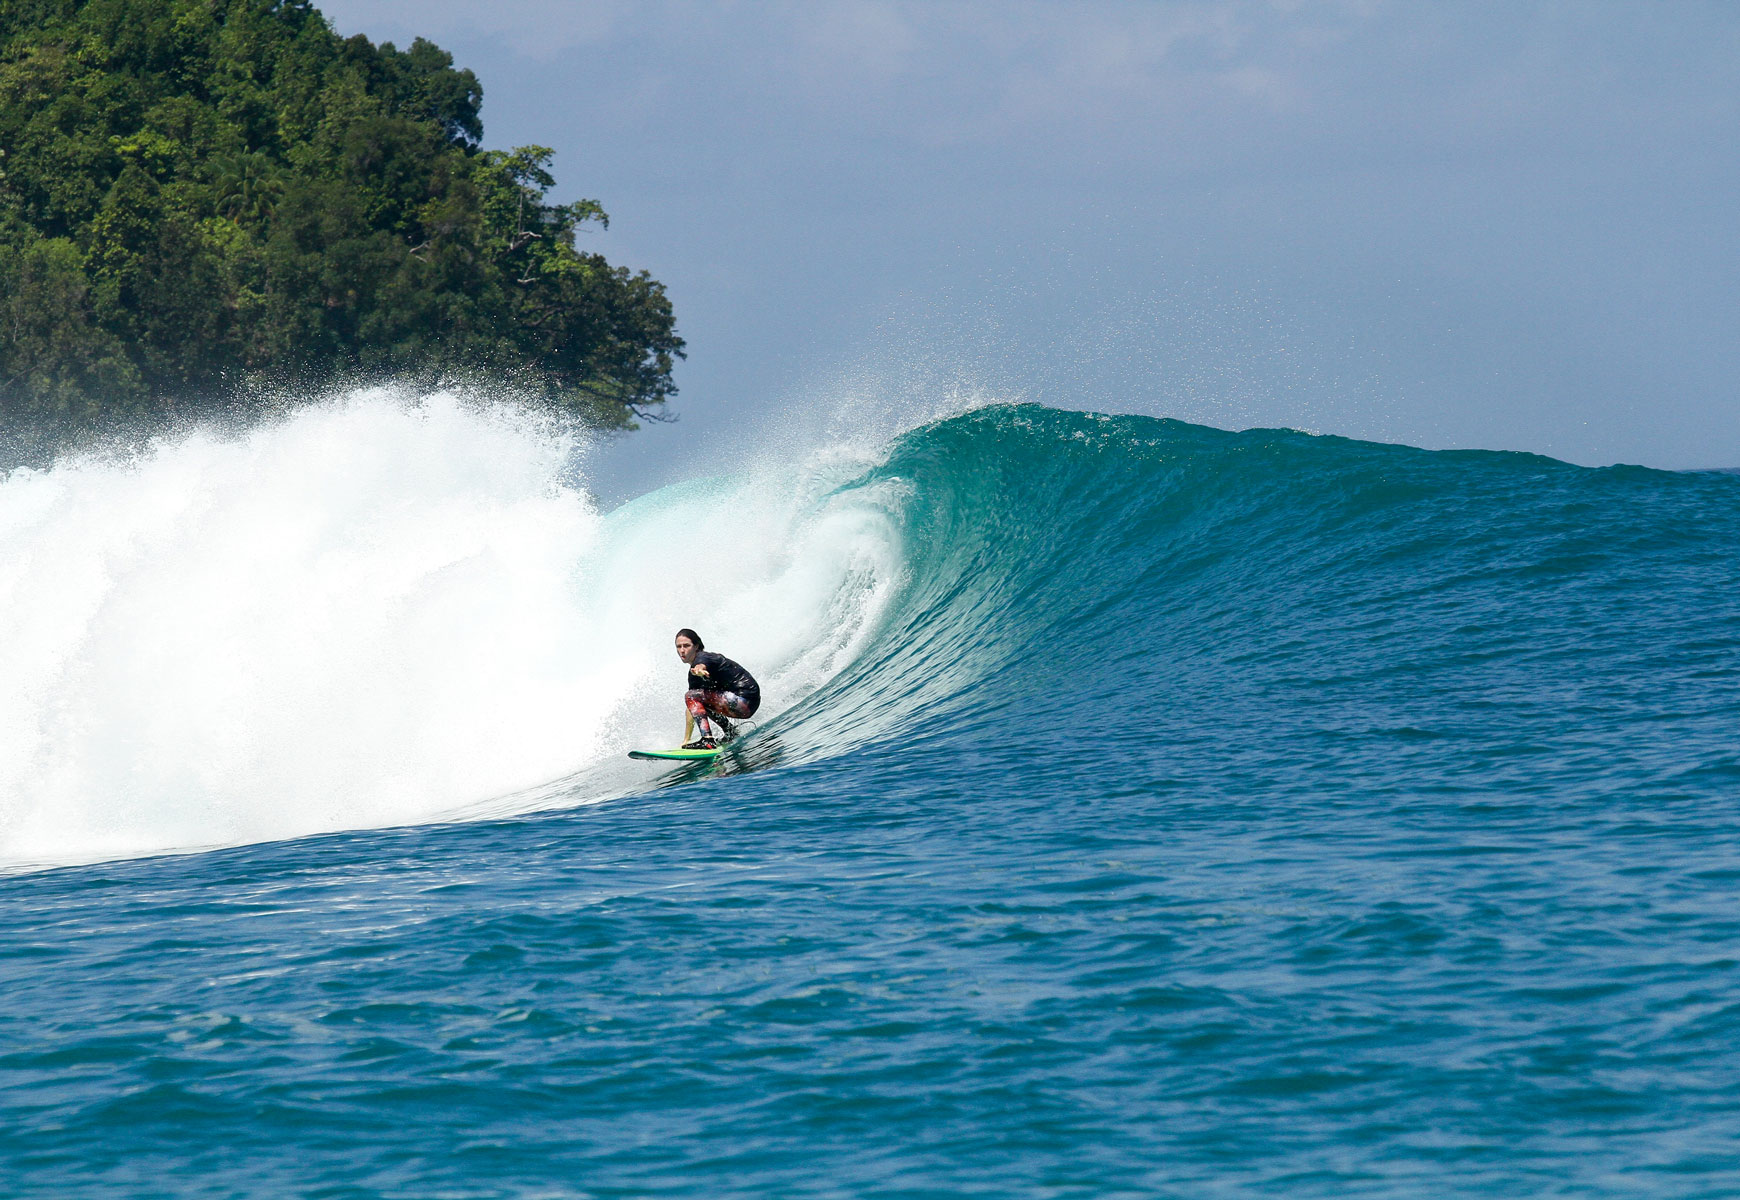 Rahasia: A perfect place to learn to get barreled.